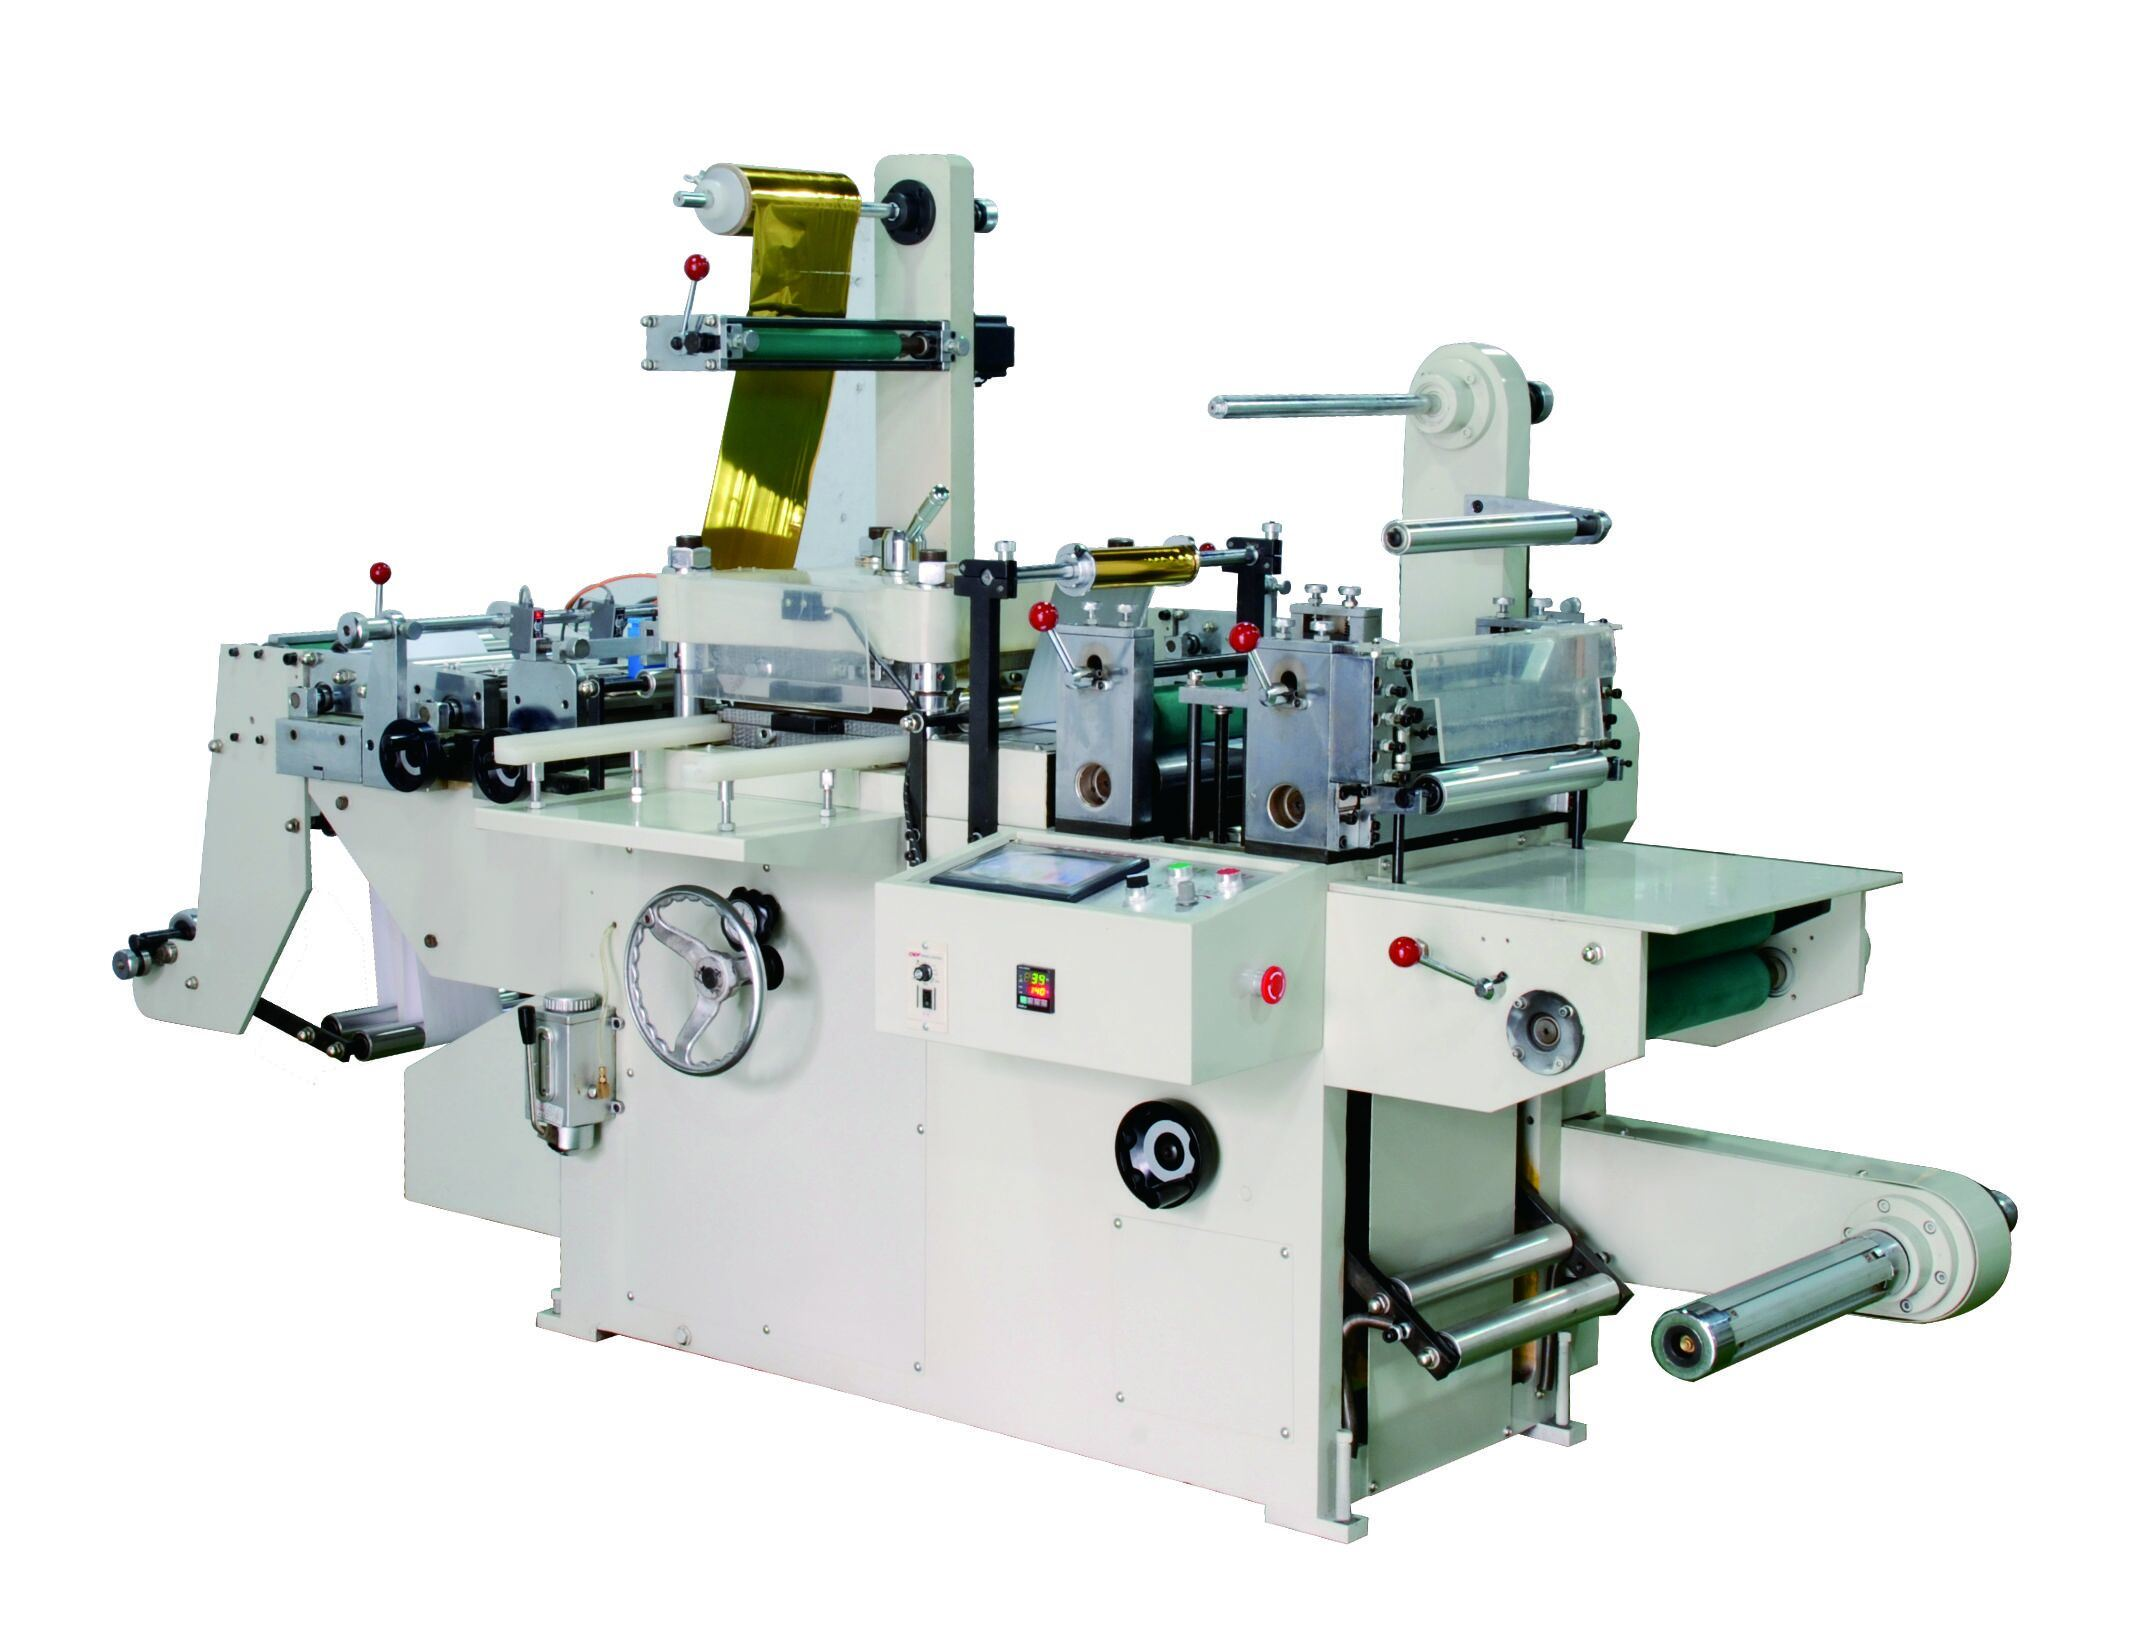 Intermittent and Whole Cycle Die-Cutting Machine